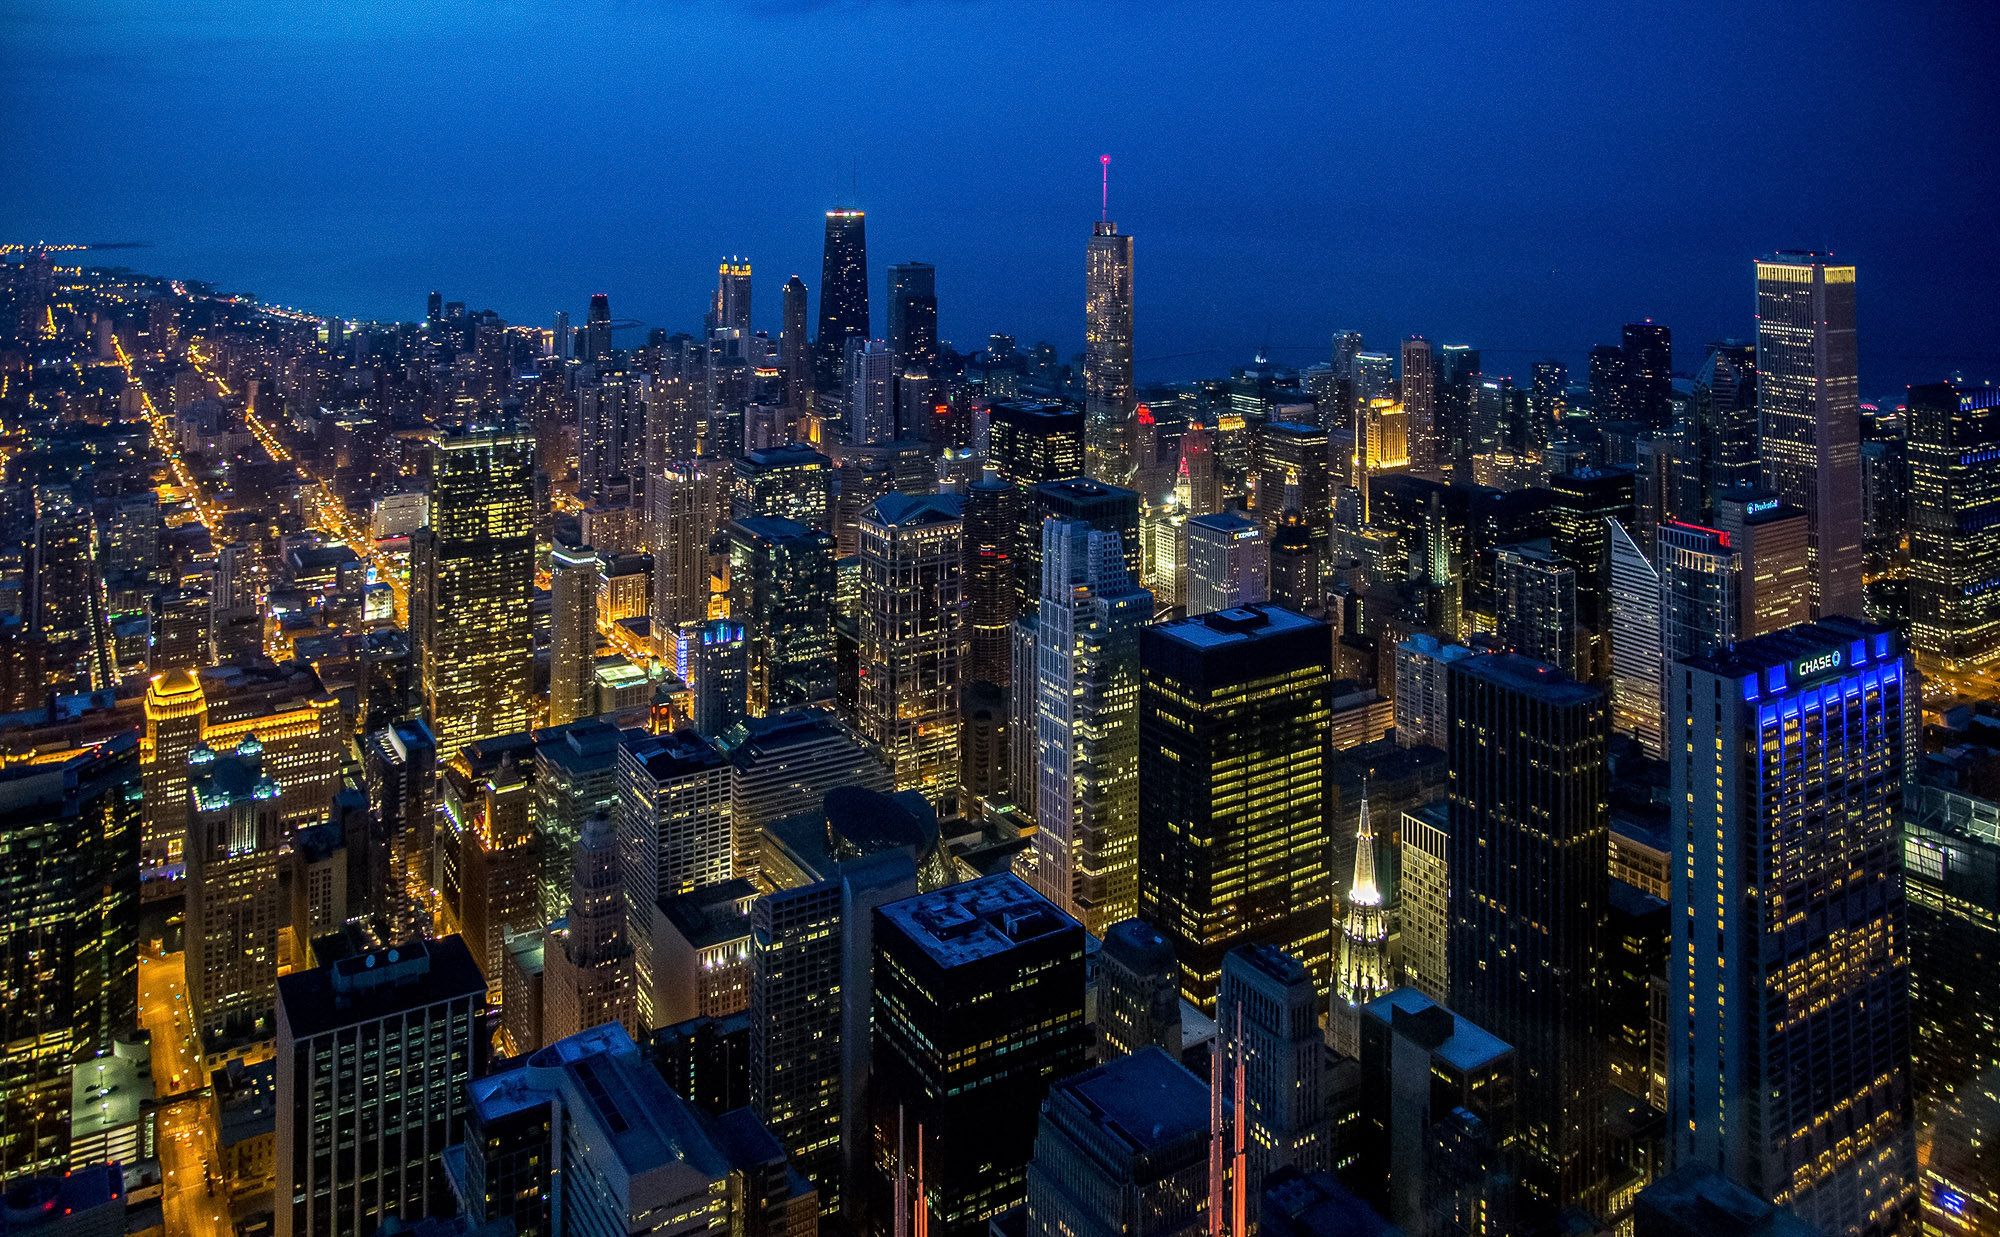 037x_Chicago_1DX56207.jpg